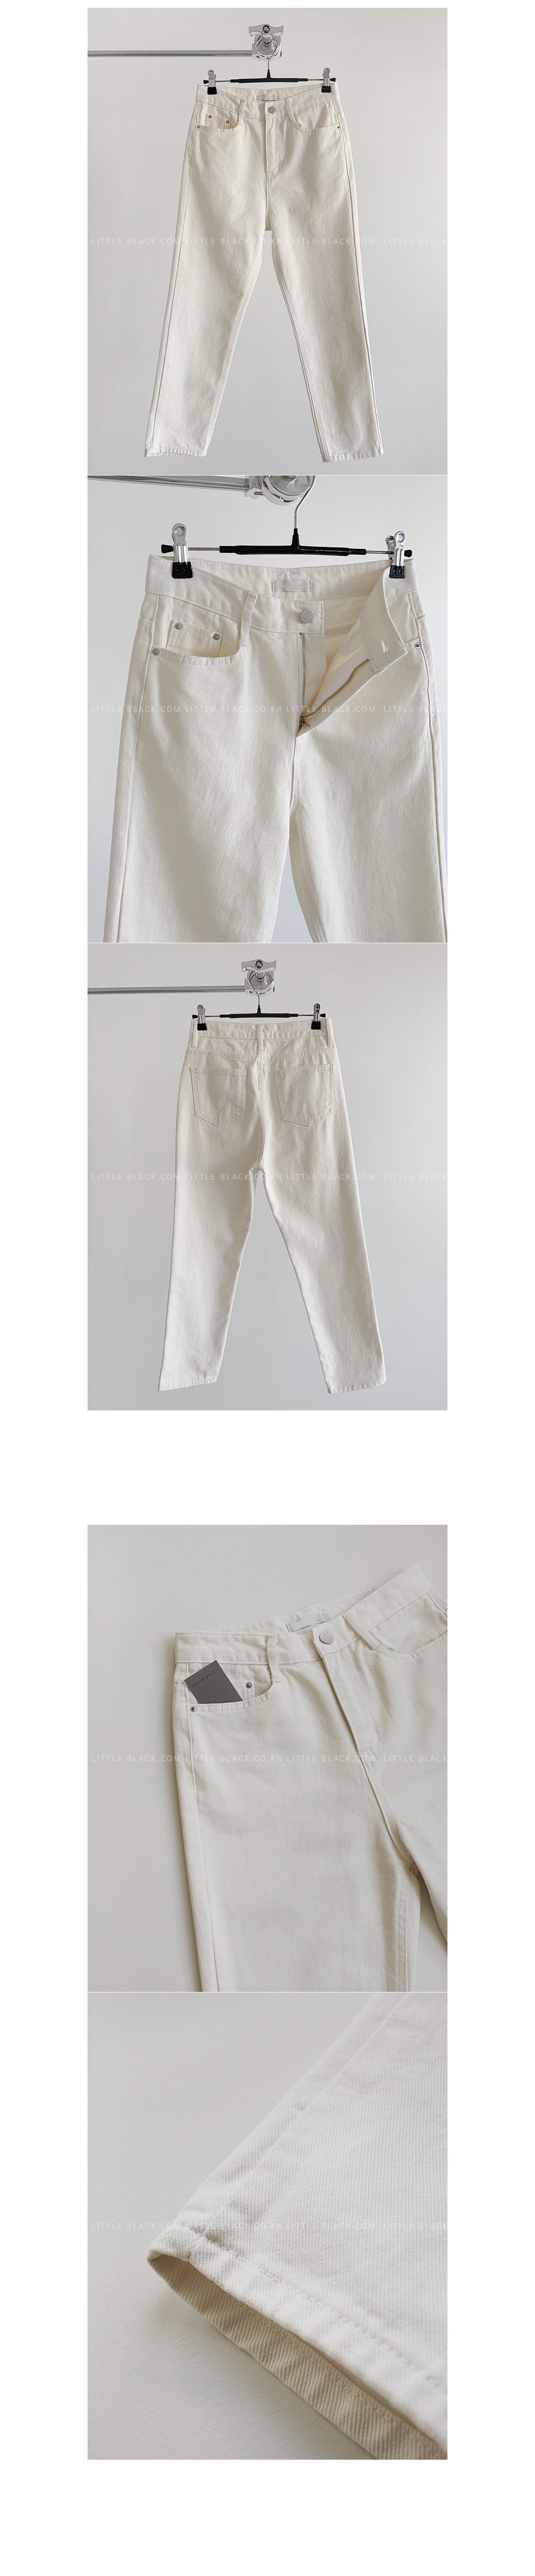 Basic Cotton Pants|